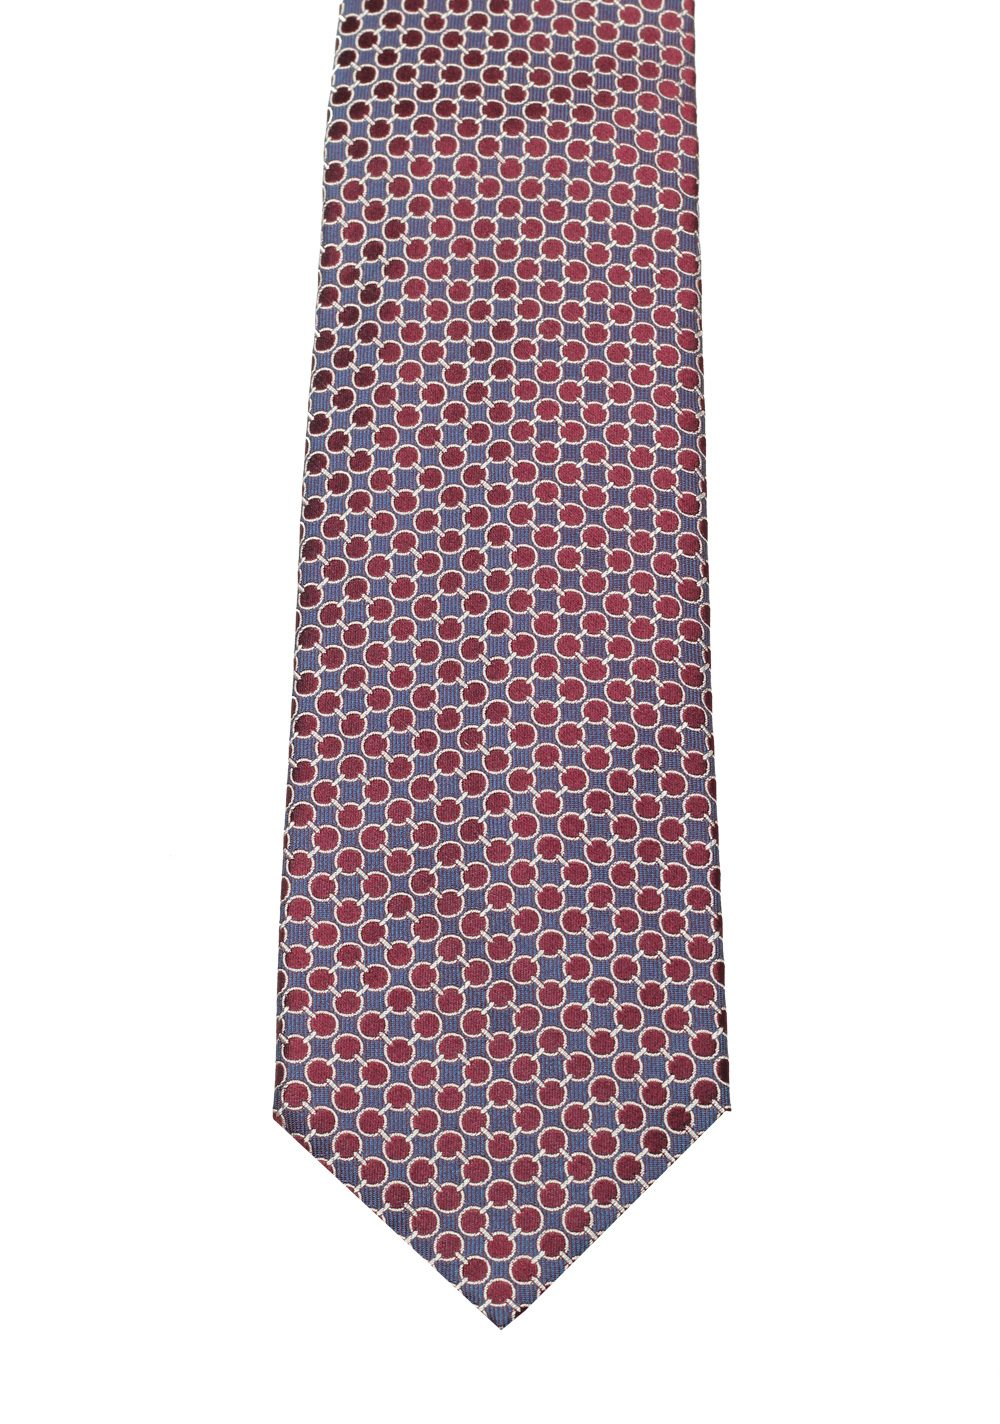 Gucci Blue / Purple Patterned Tie | Costume Limité